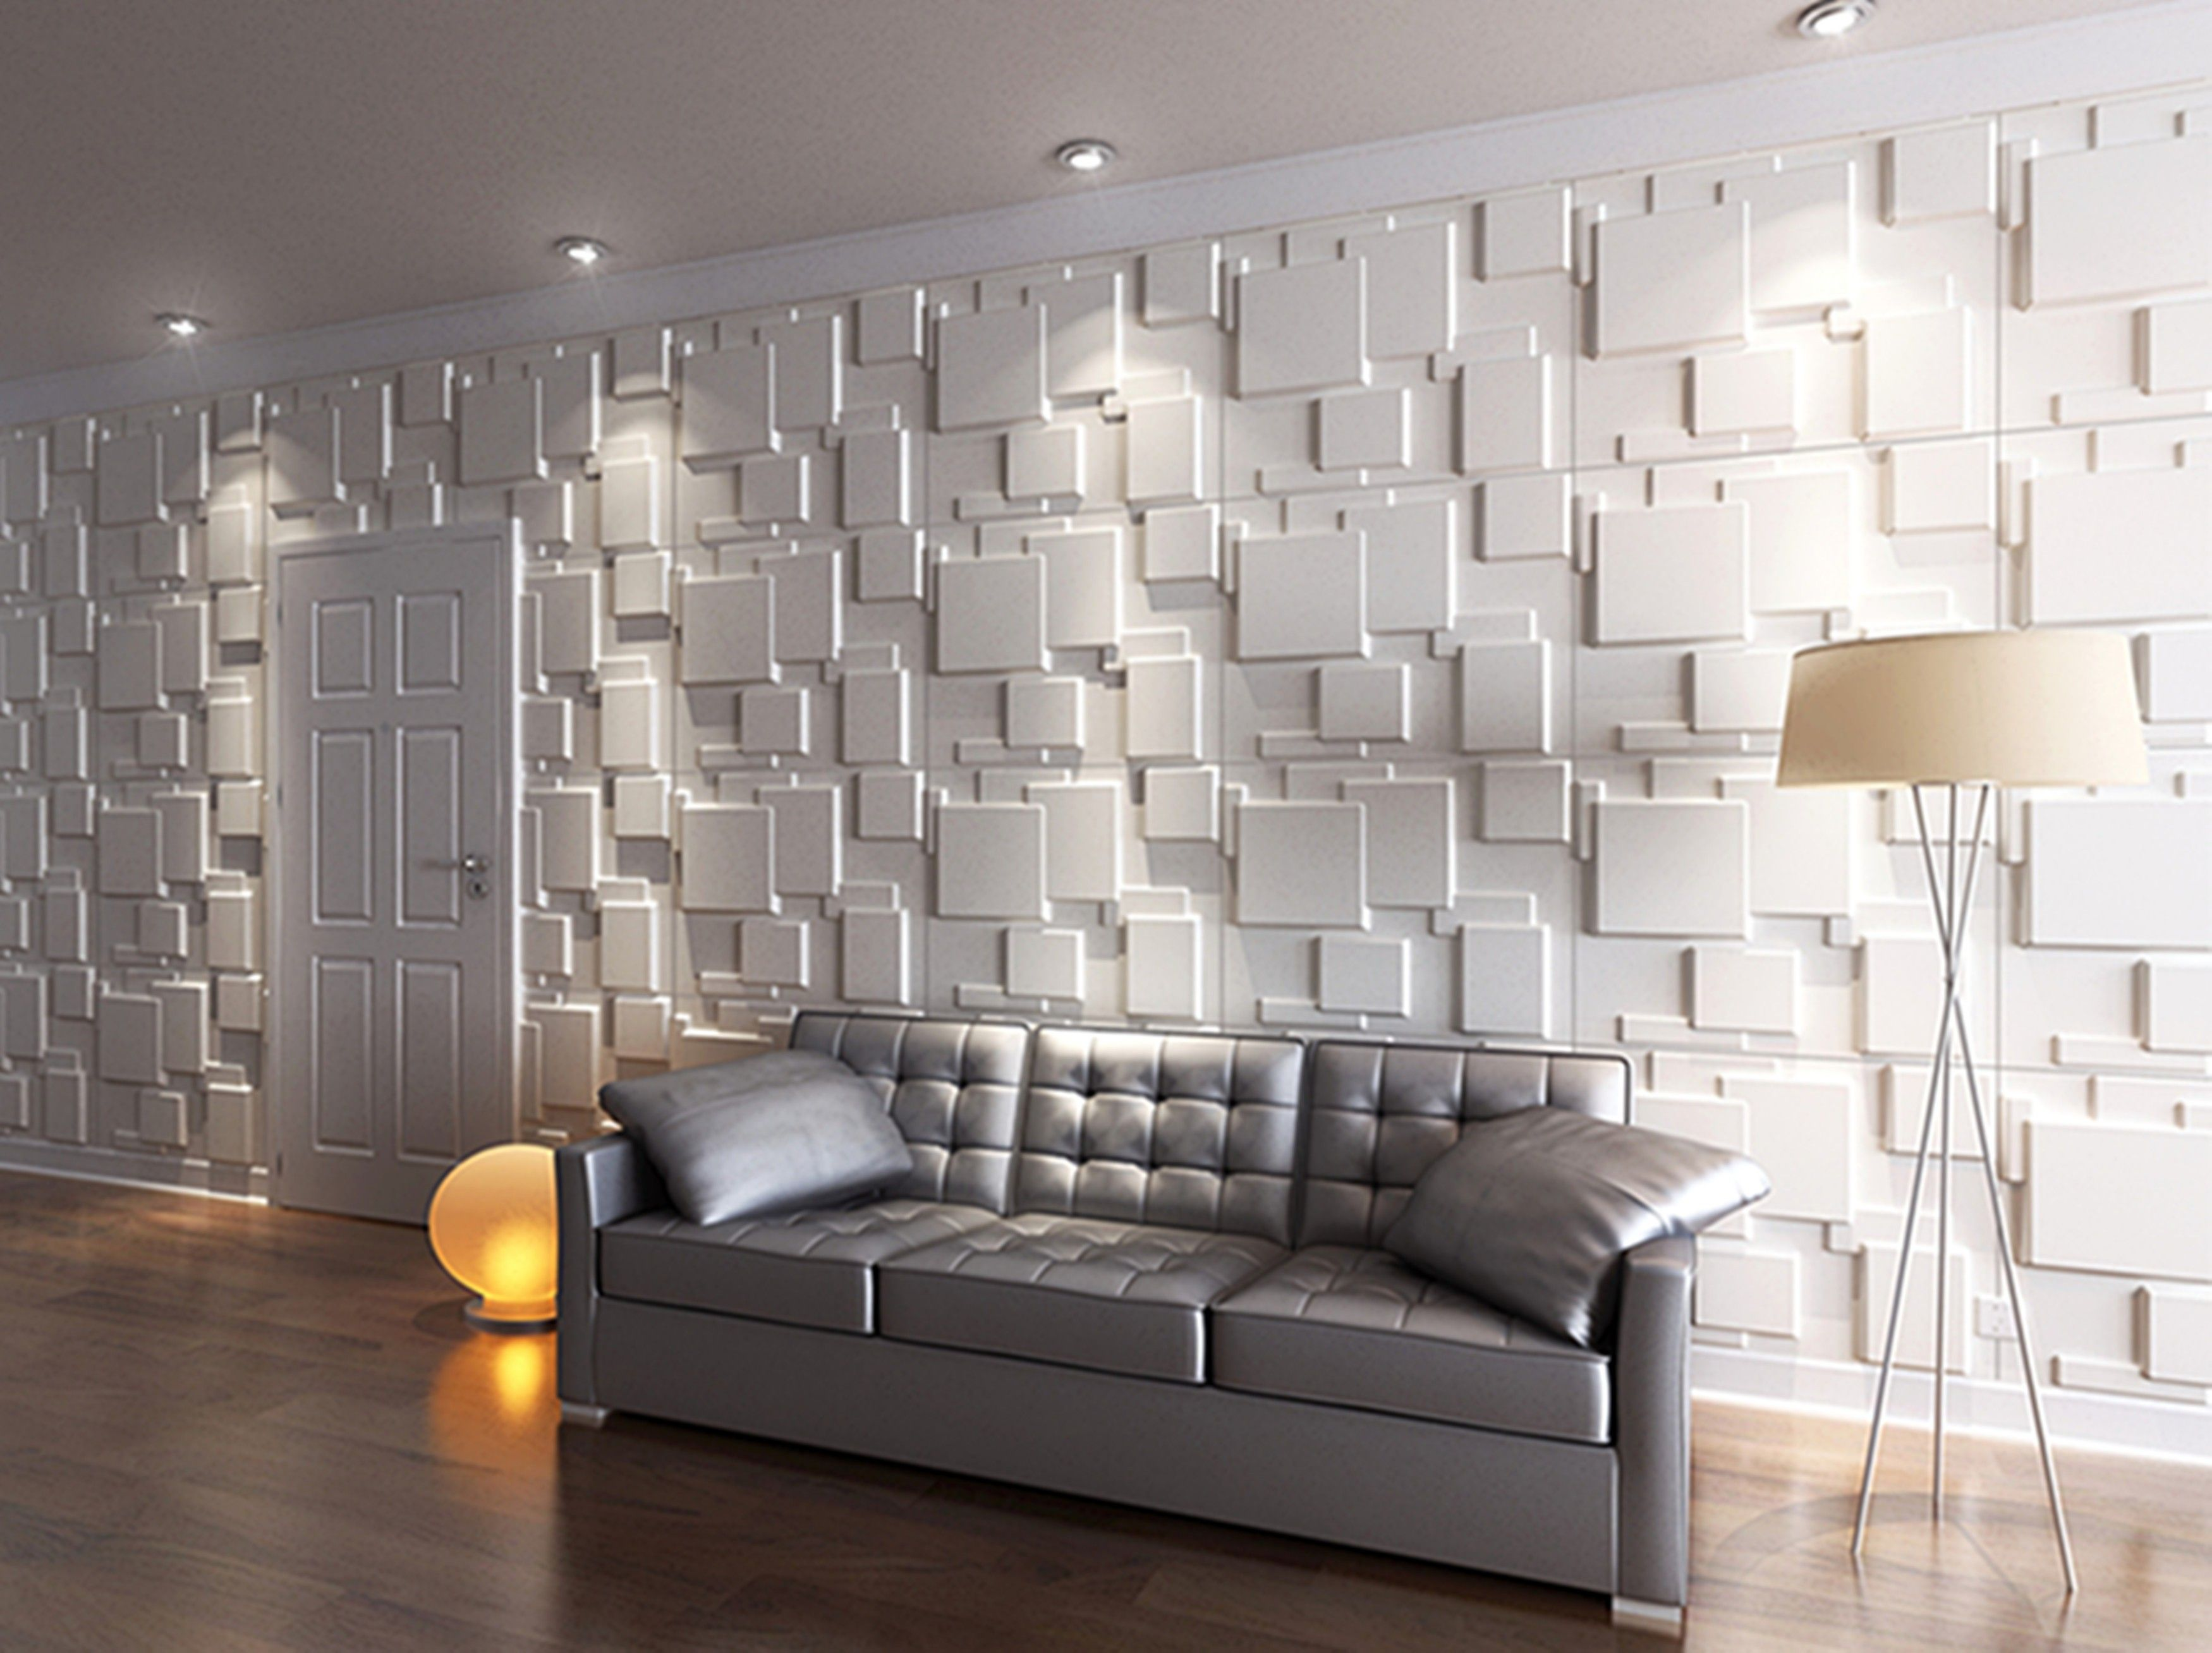 Bring Your Walls To Life With Our Decorative 3D Wall Panels ...